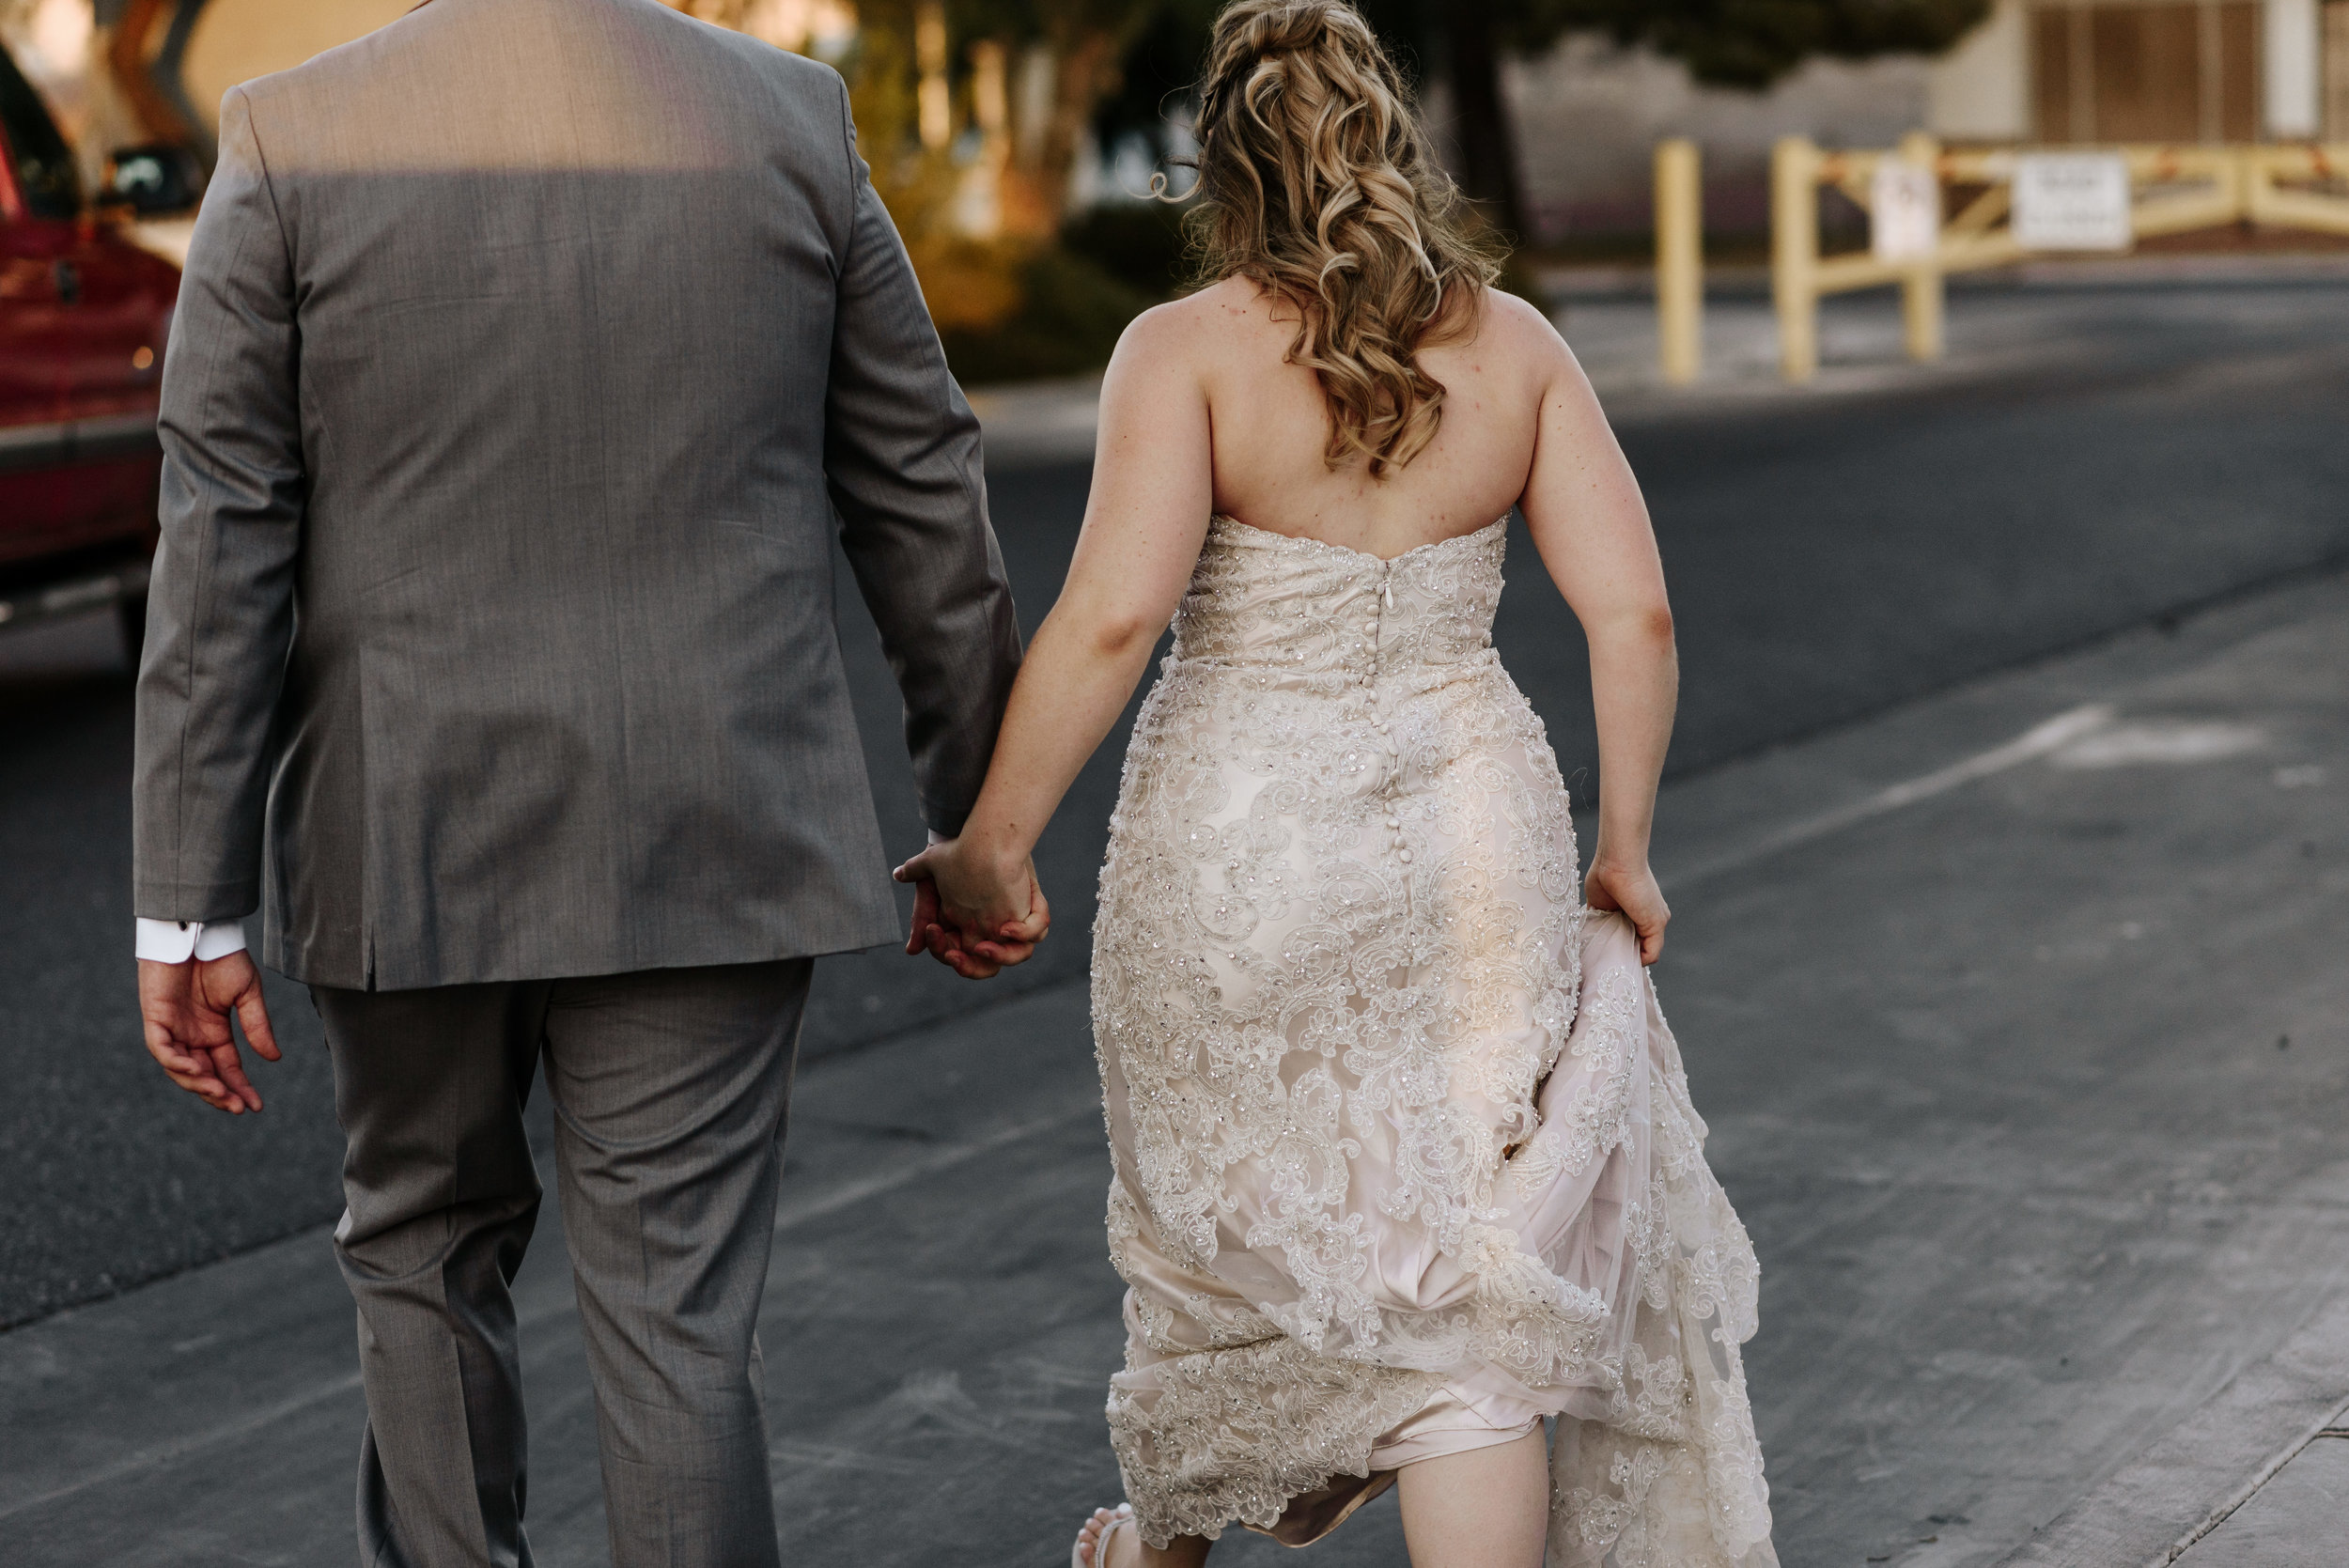 Neon-Museum-Wedding-Las-Vegas-Nevada-Golden-Nugget-Photography-by-V-Ally-and-Dan-6840.jpg